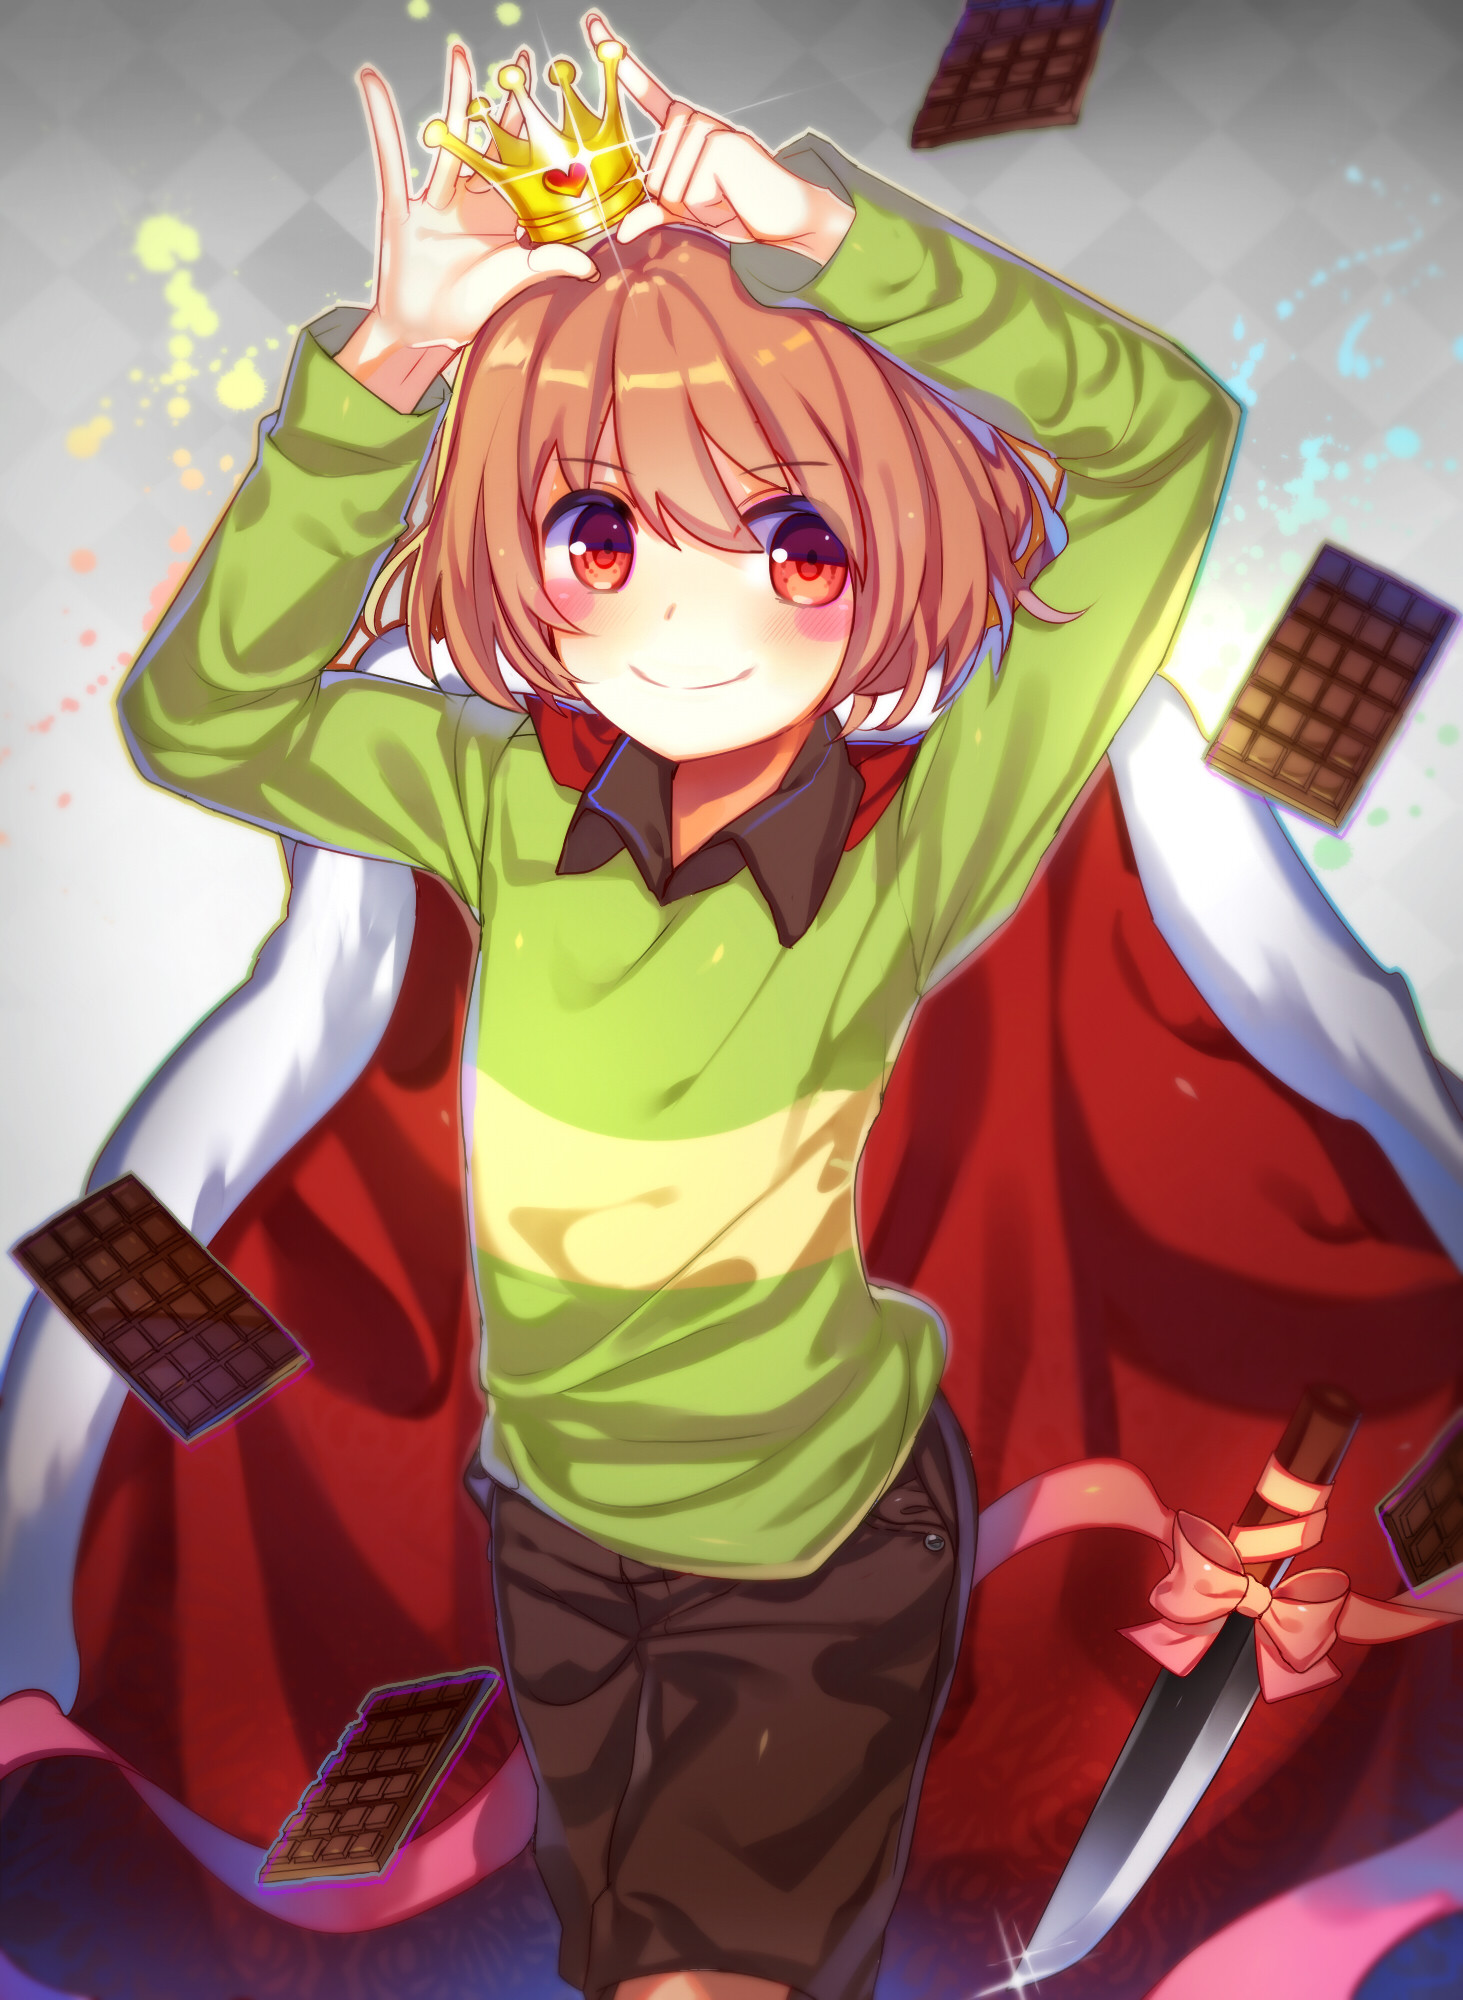 Chara (Undertale) download Chara (Undertale) image